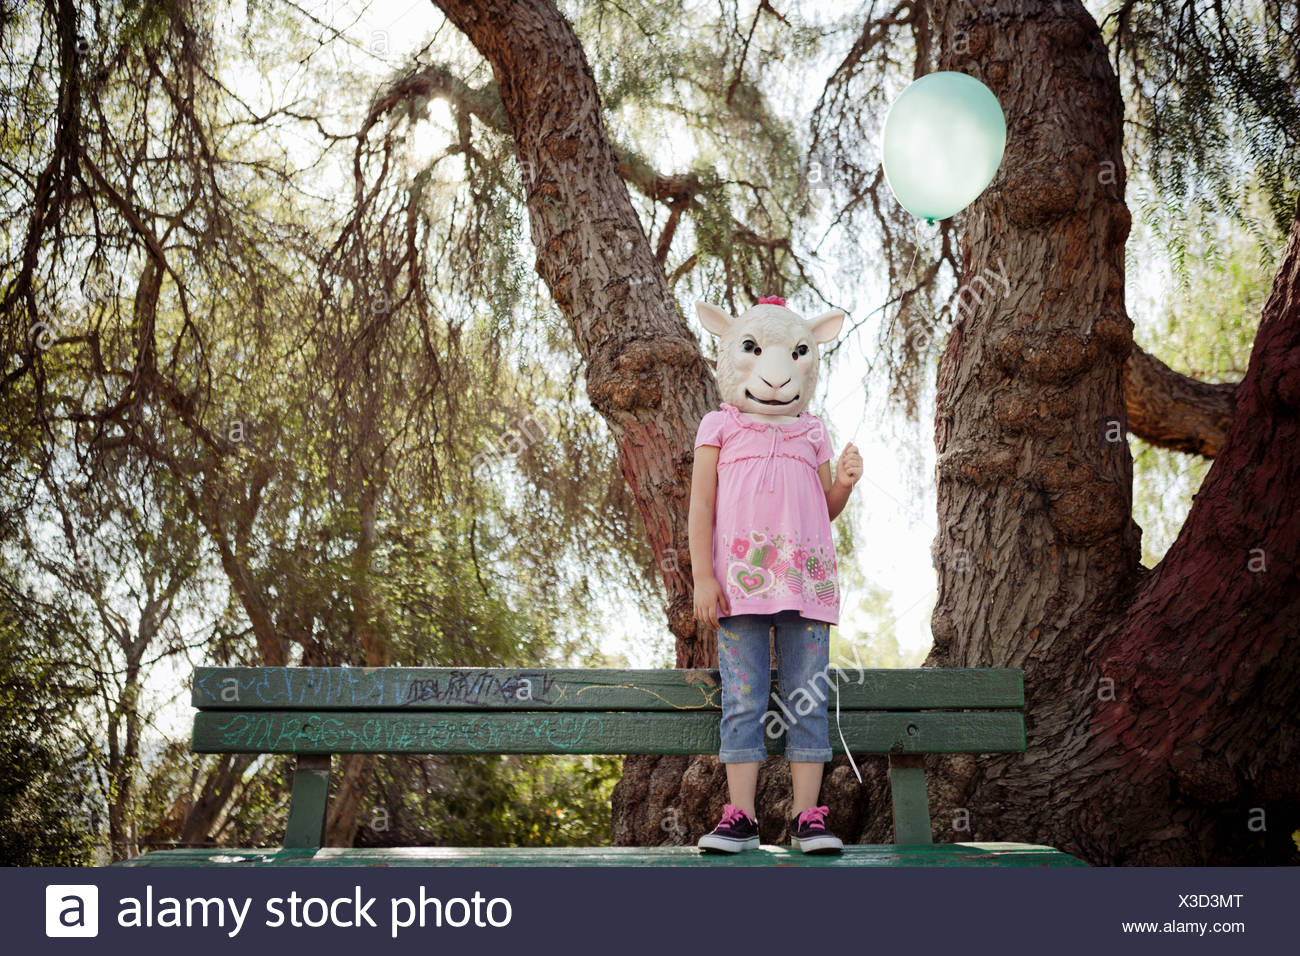 Child in costume of sheep head mask - Stock Image